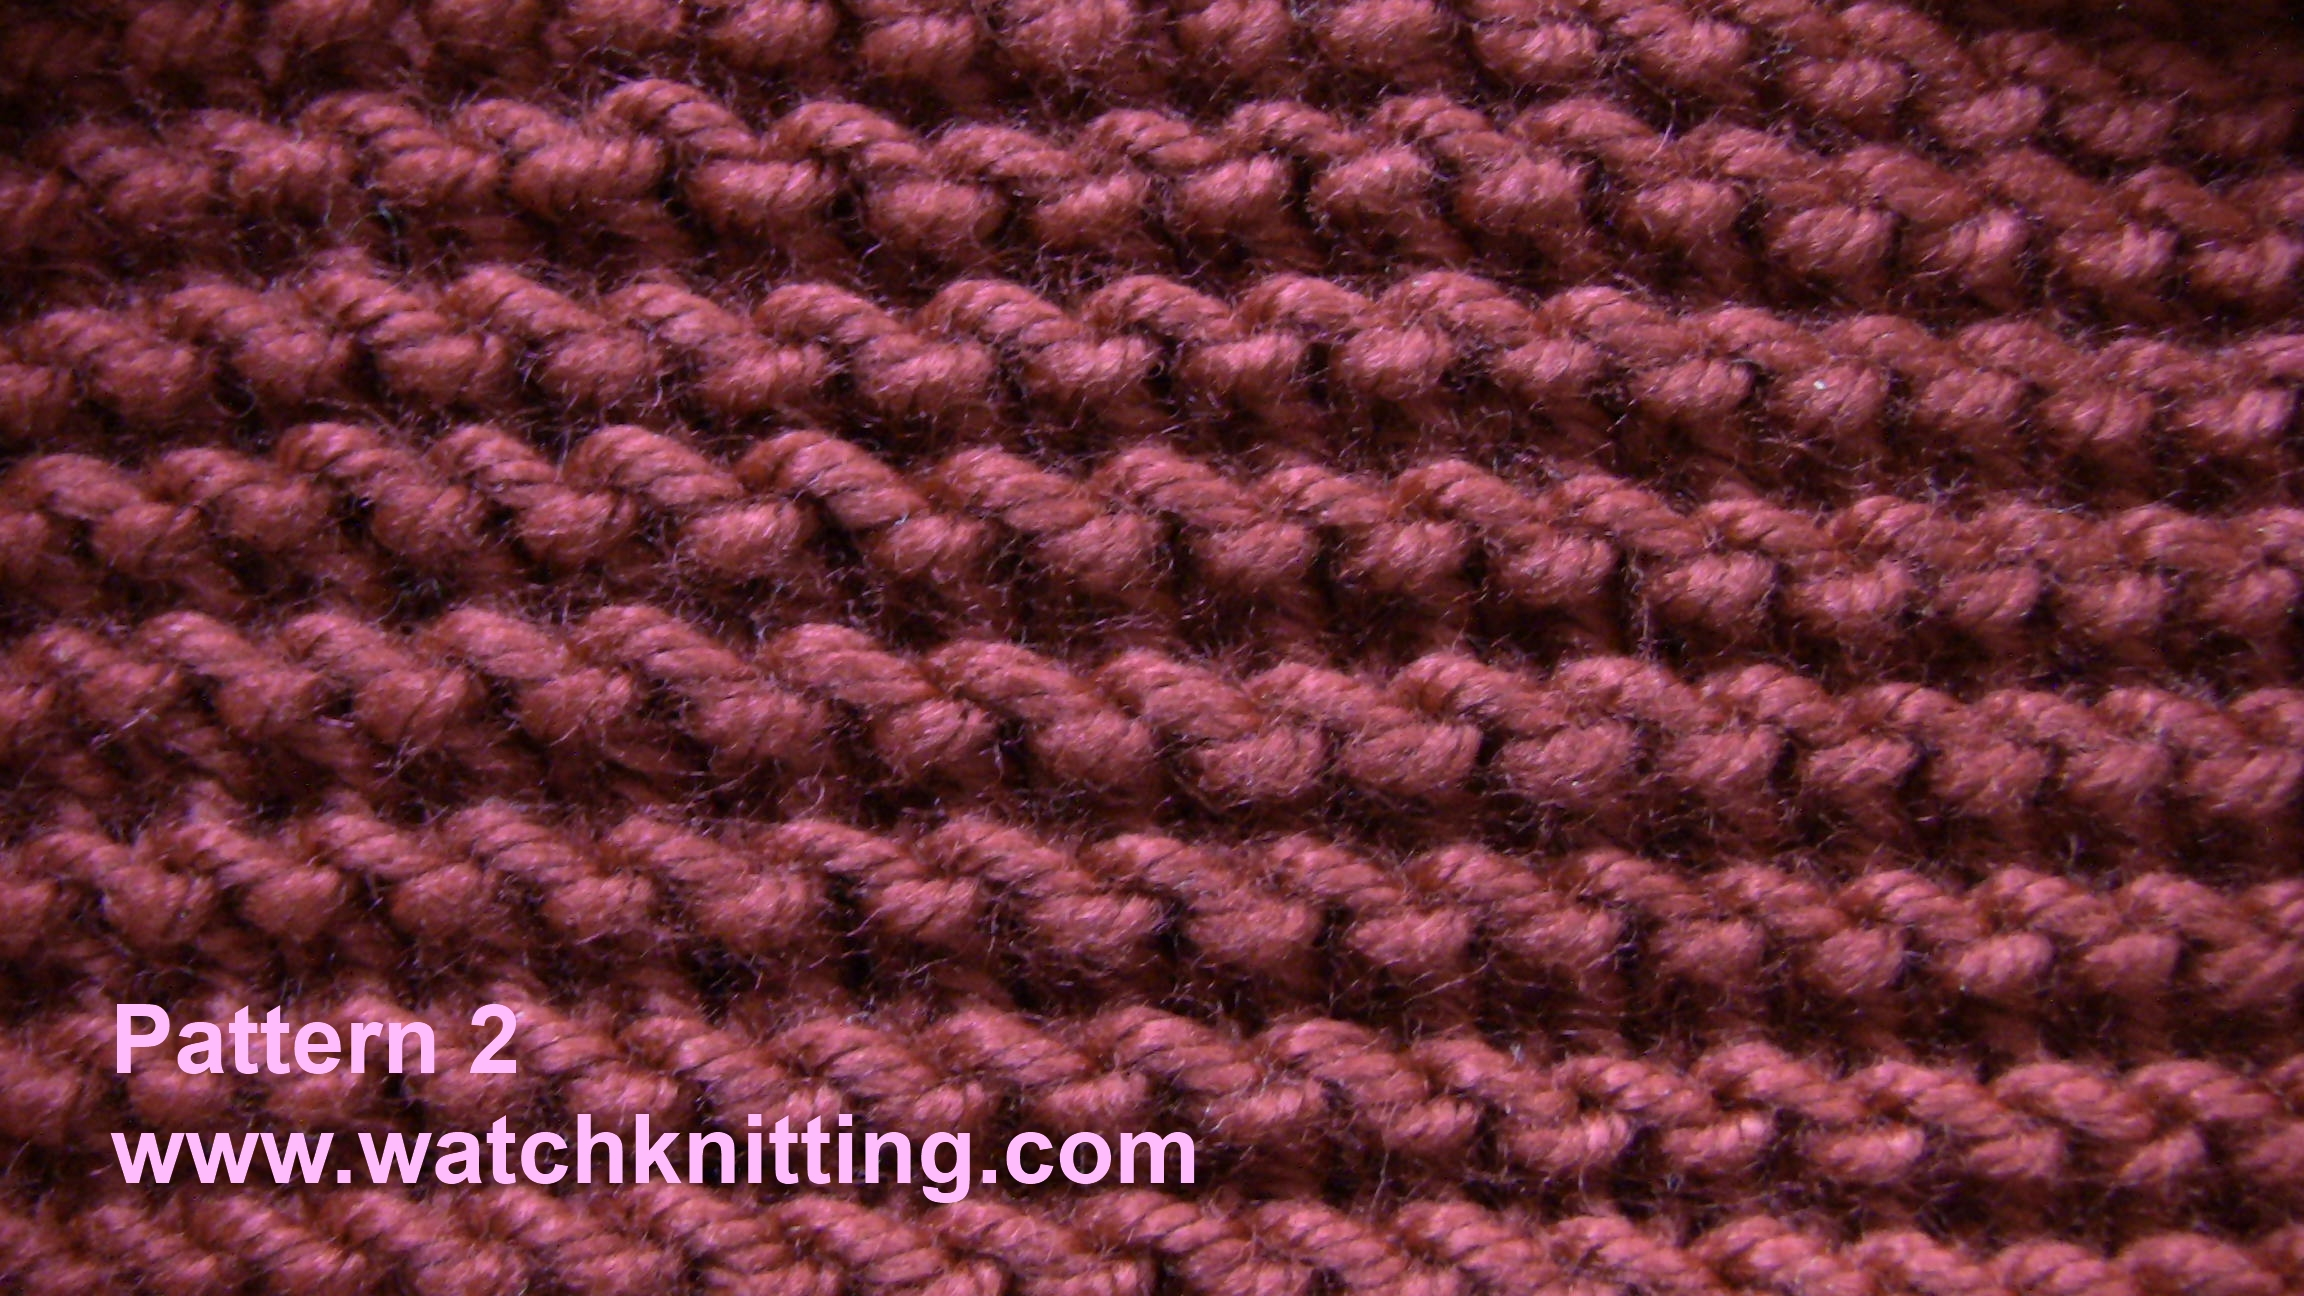 Knitting Instructions : Pattern 2-Simple Knitting Patterns-www.watchknitting.com